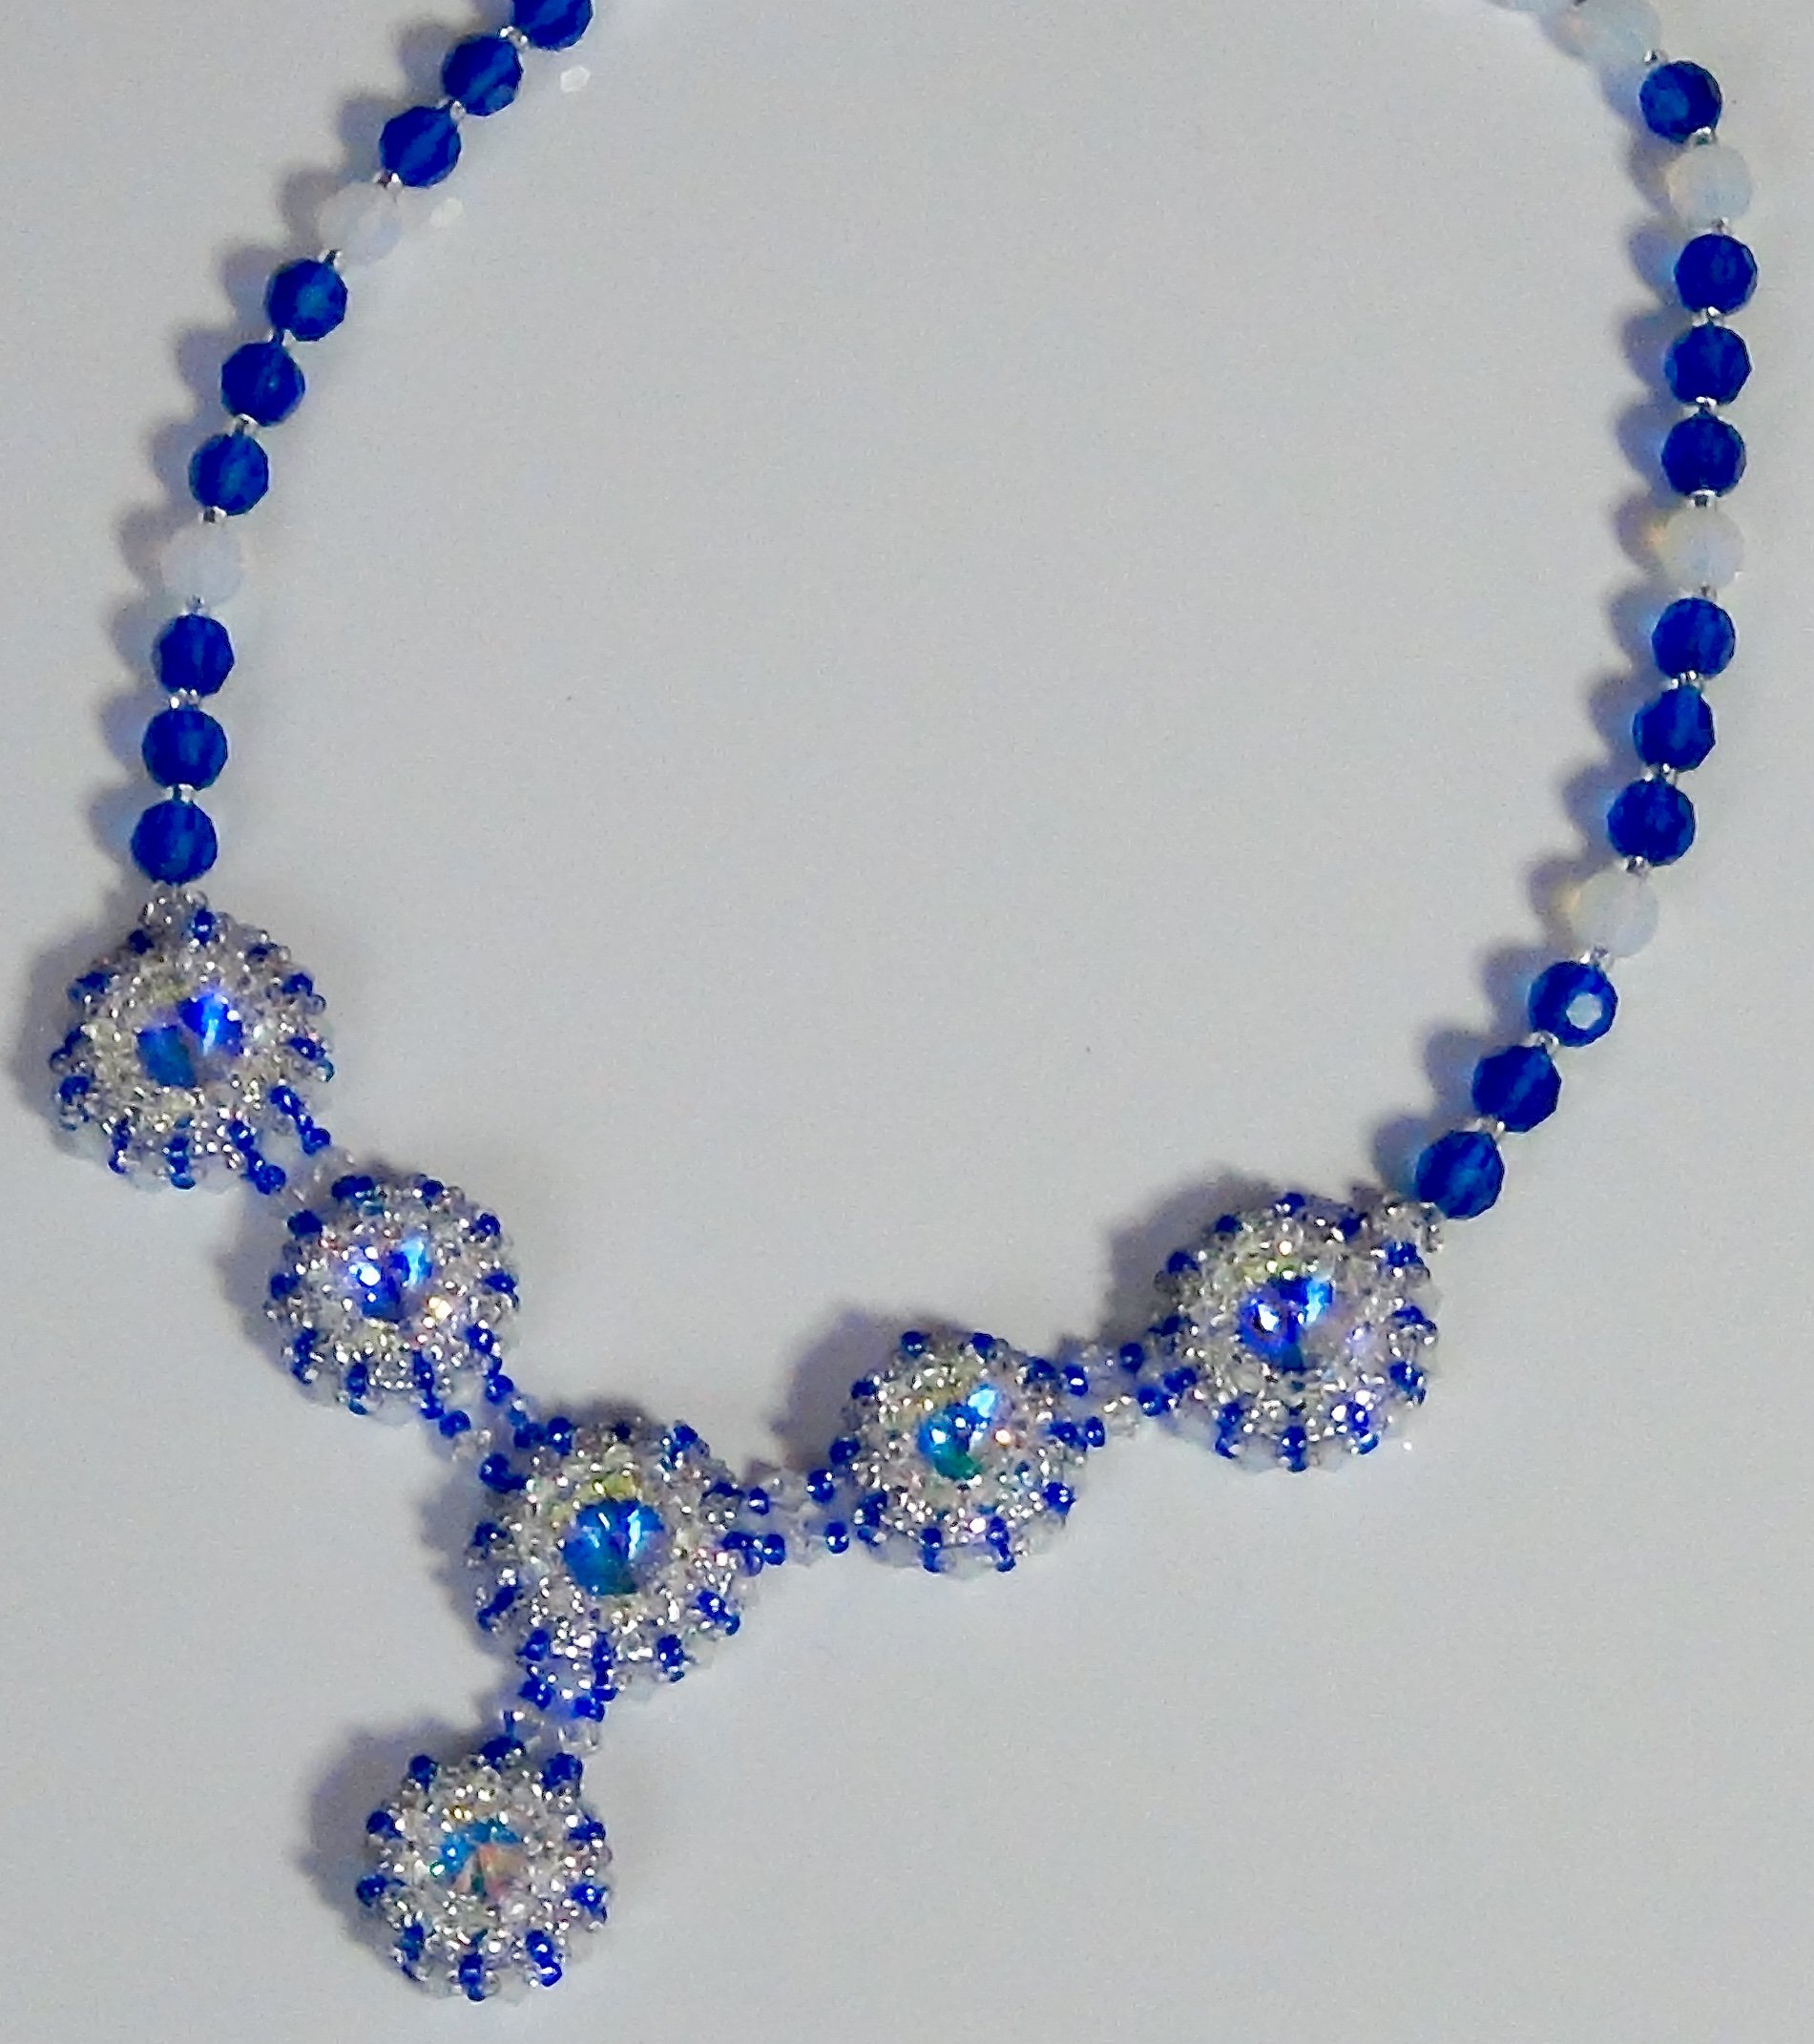 Toxic Necklace #3